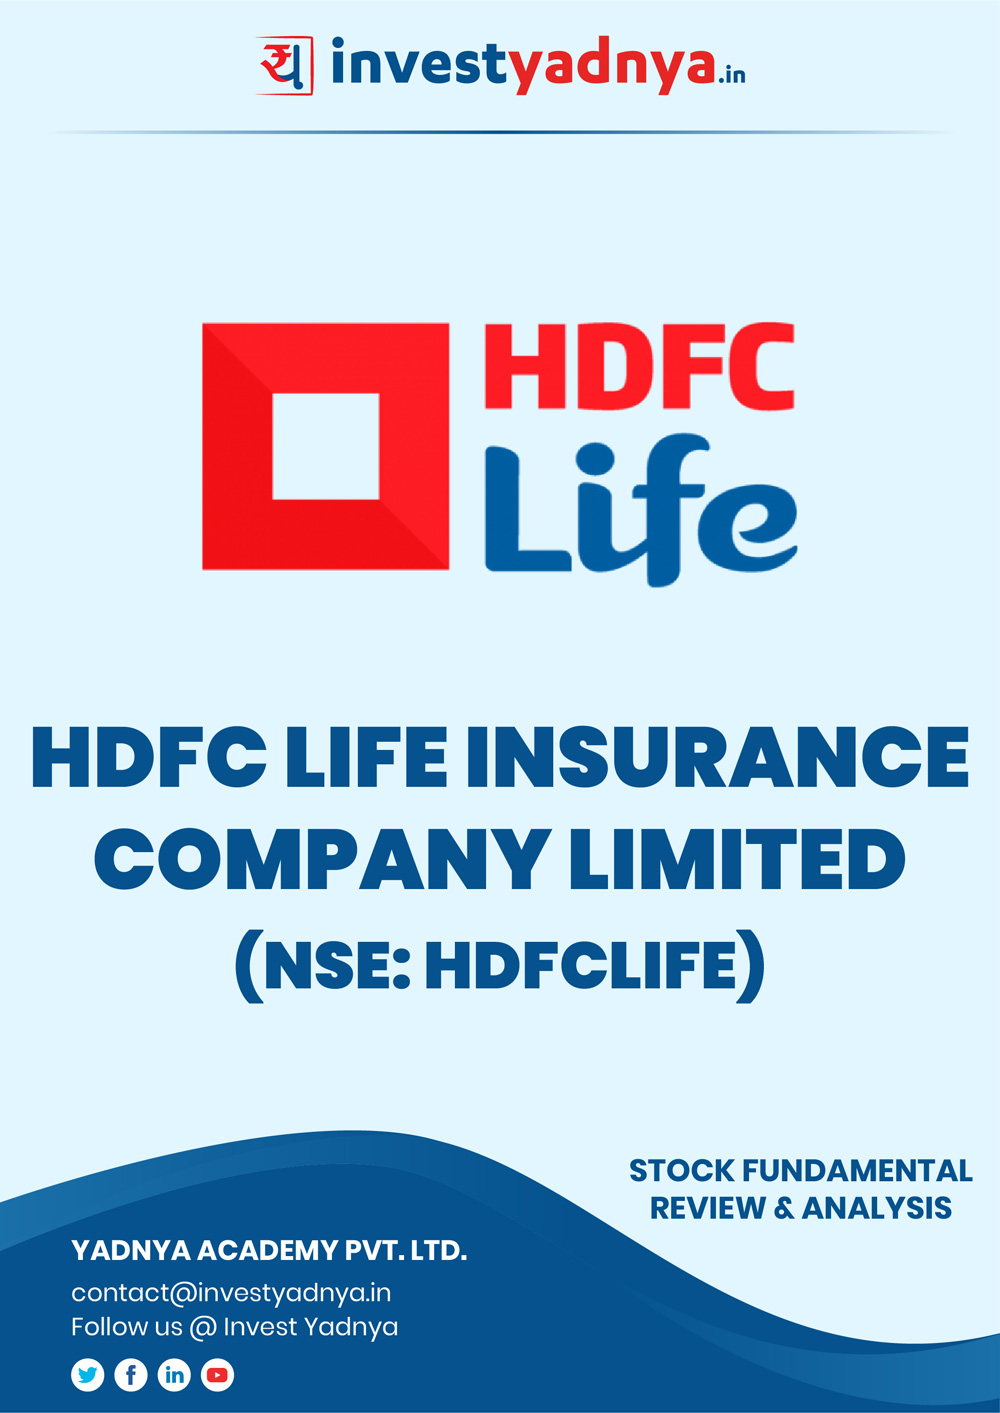 HDFC Life Insurance Company Ltd. Company/Stock Review & Analysis based on Q42018-19 and FY2018-19 data. The book contains Fundamental Analysis of the company considering both Quantitative (Financial) and Qualitative Parameters.